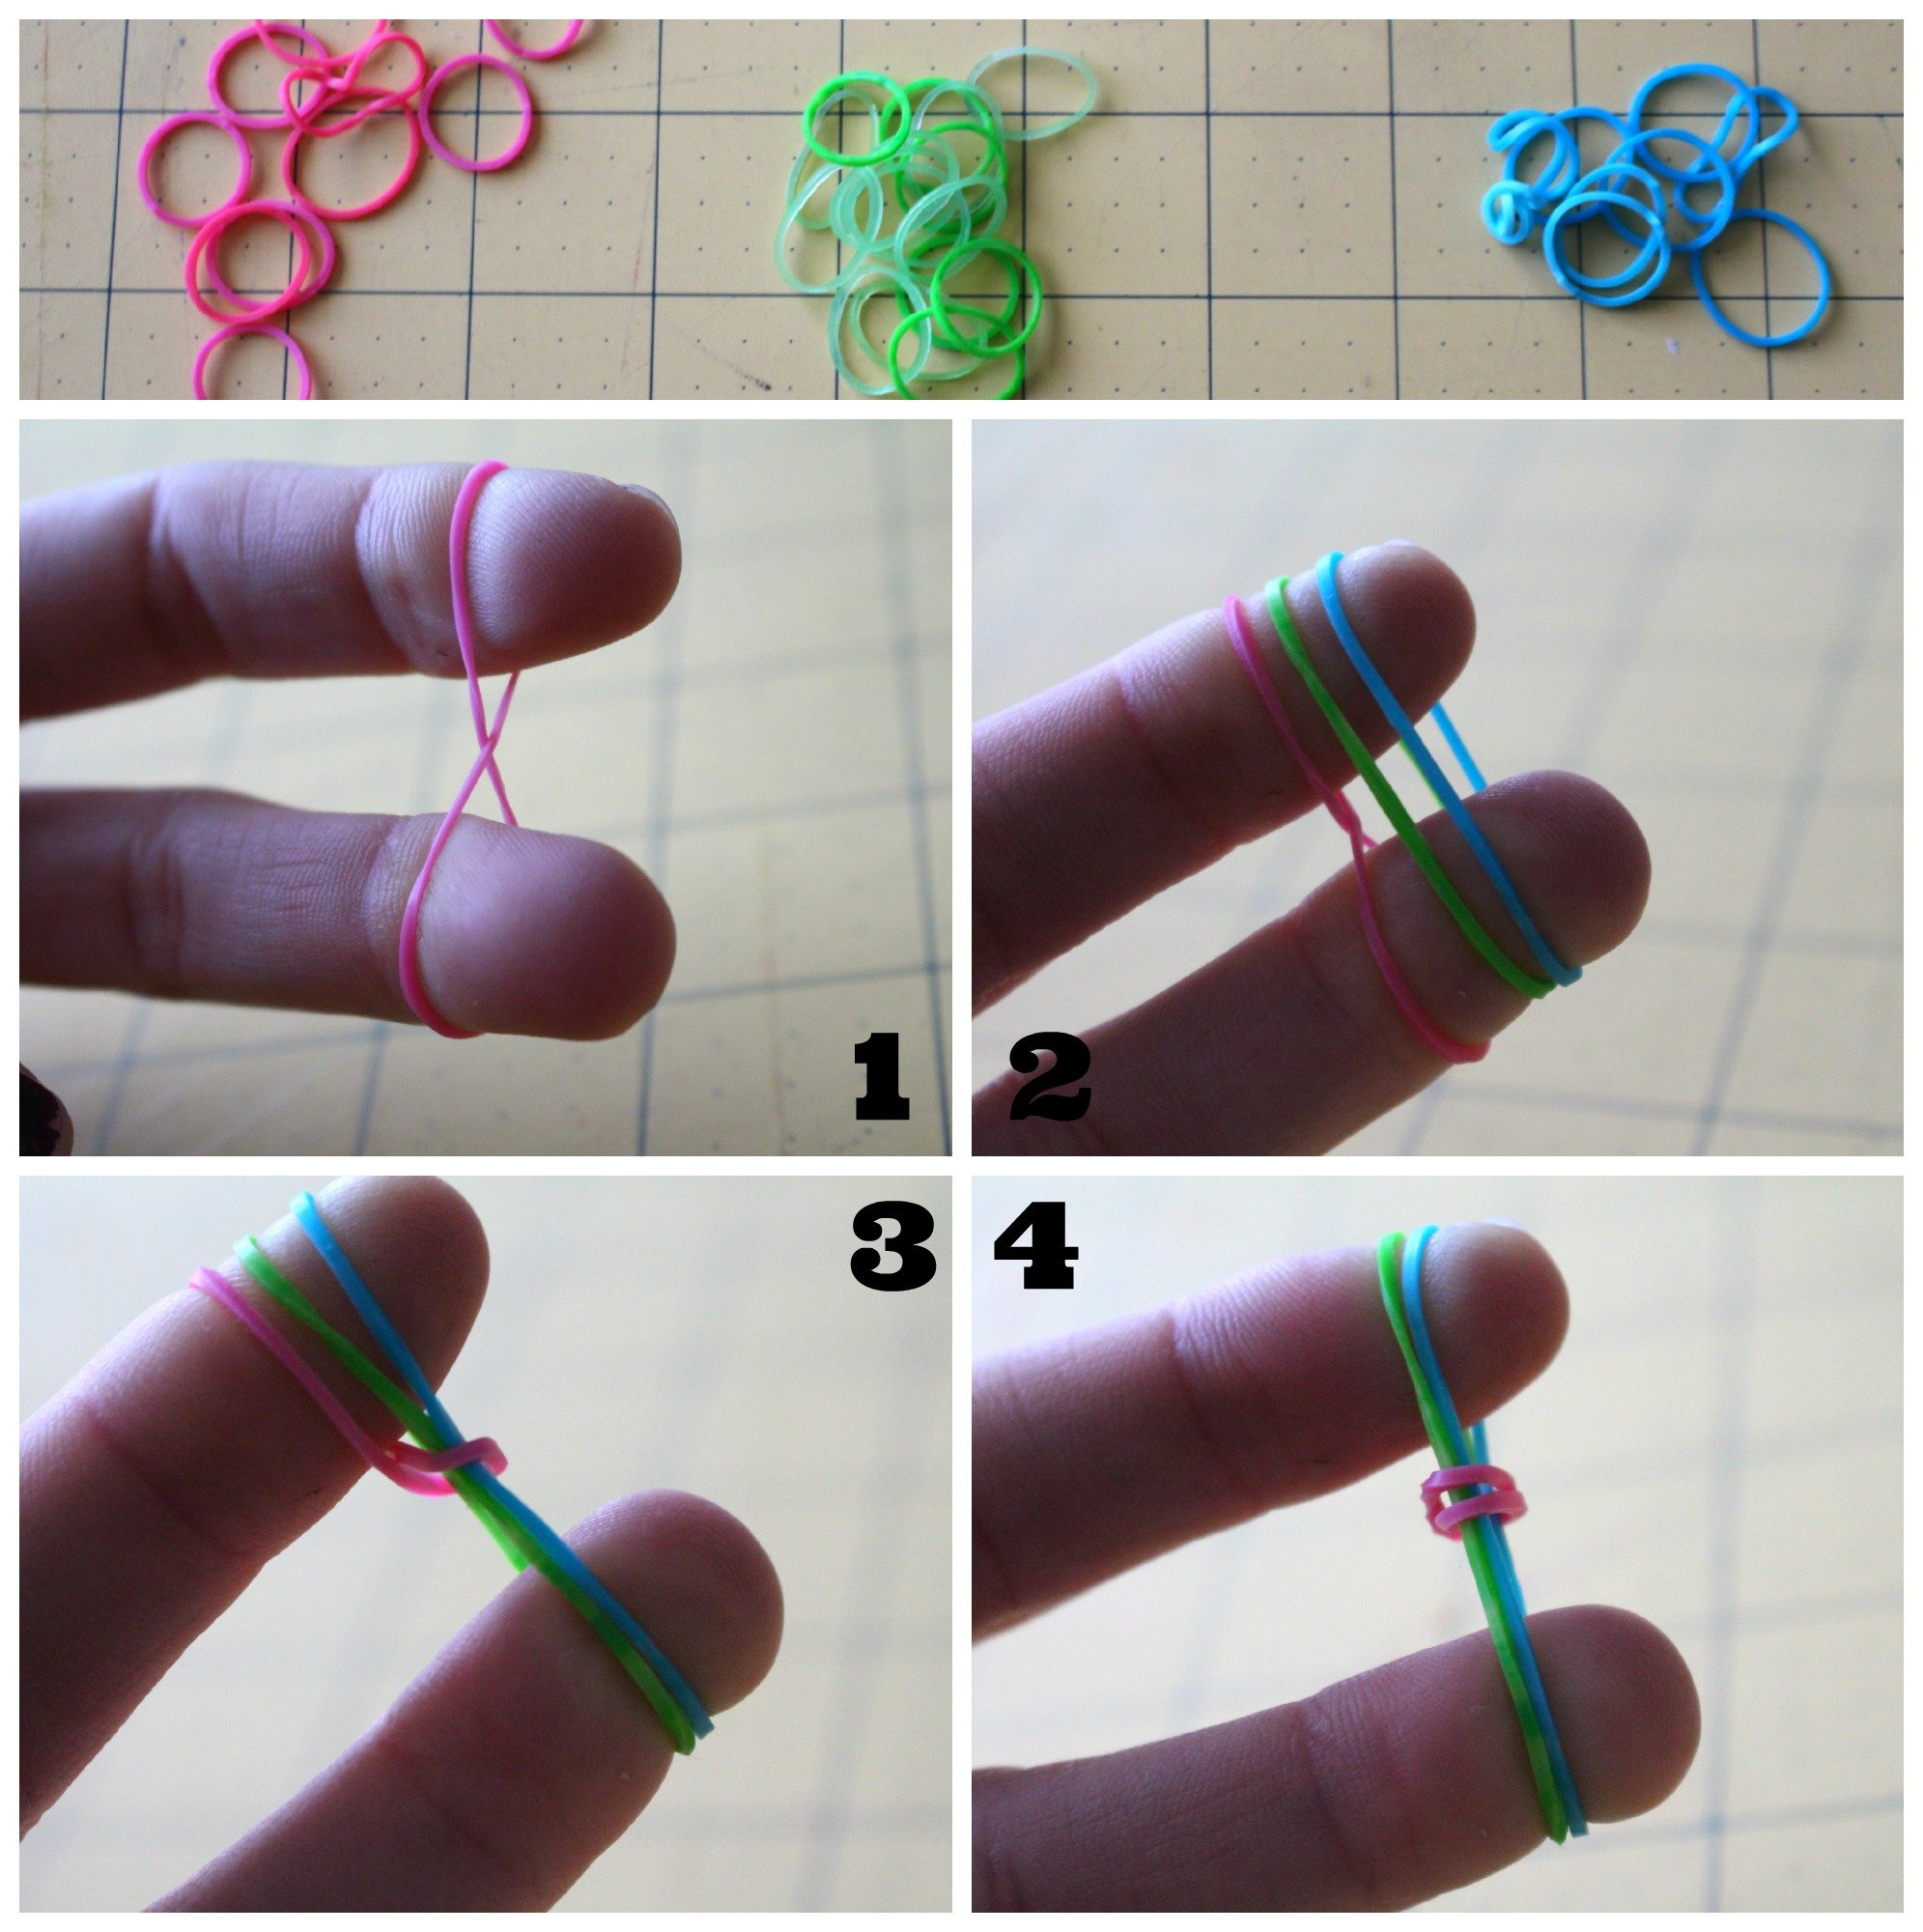 How To Make The Rubber Band Bracelets With Your Fingers